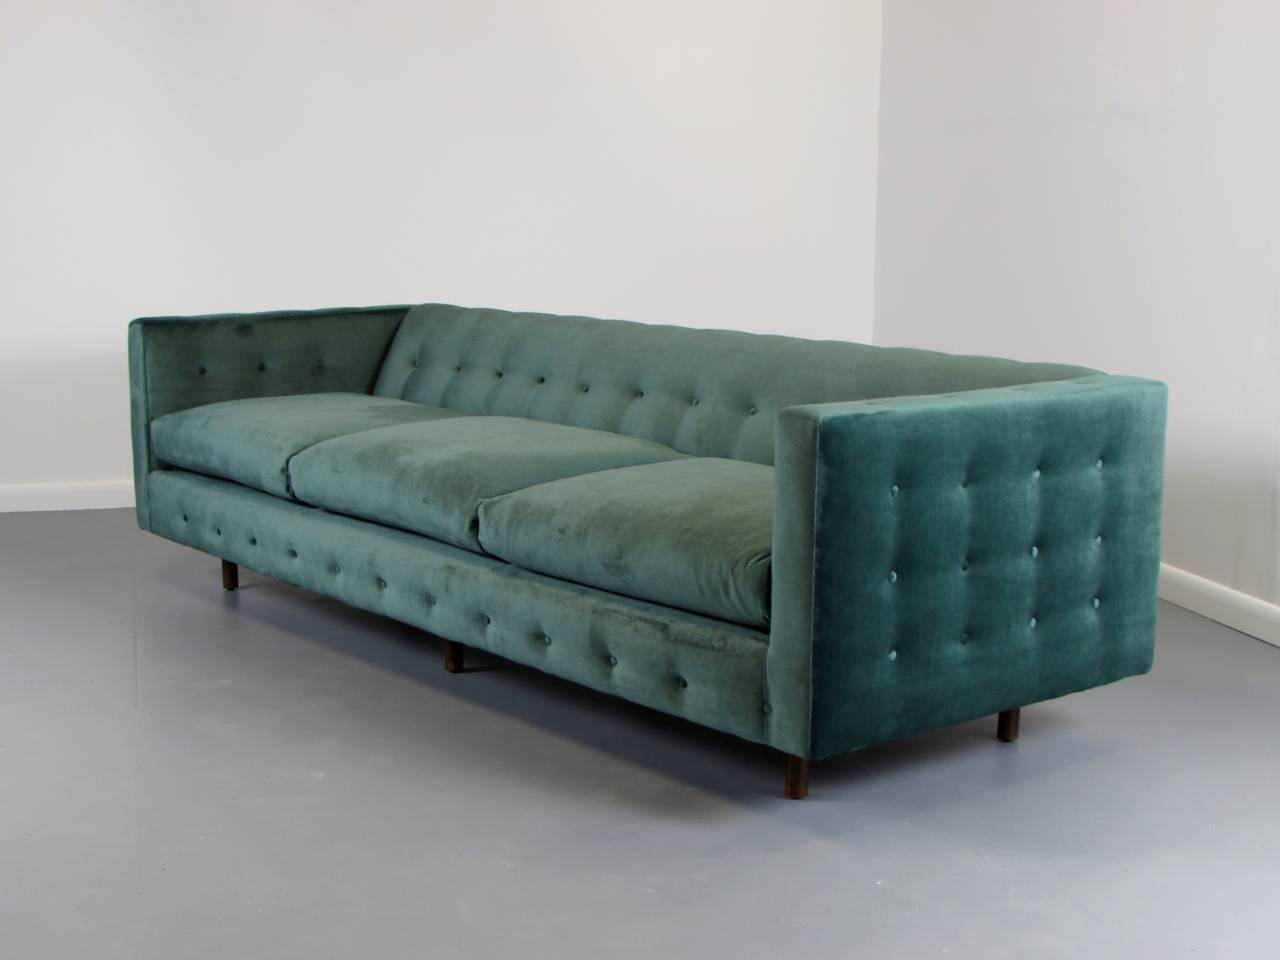 Amazing Tuxedo Sofa 95 For Your Contemporary Sofa Inspiration with Tuxedo Sofa